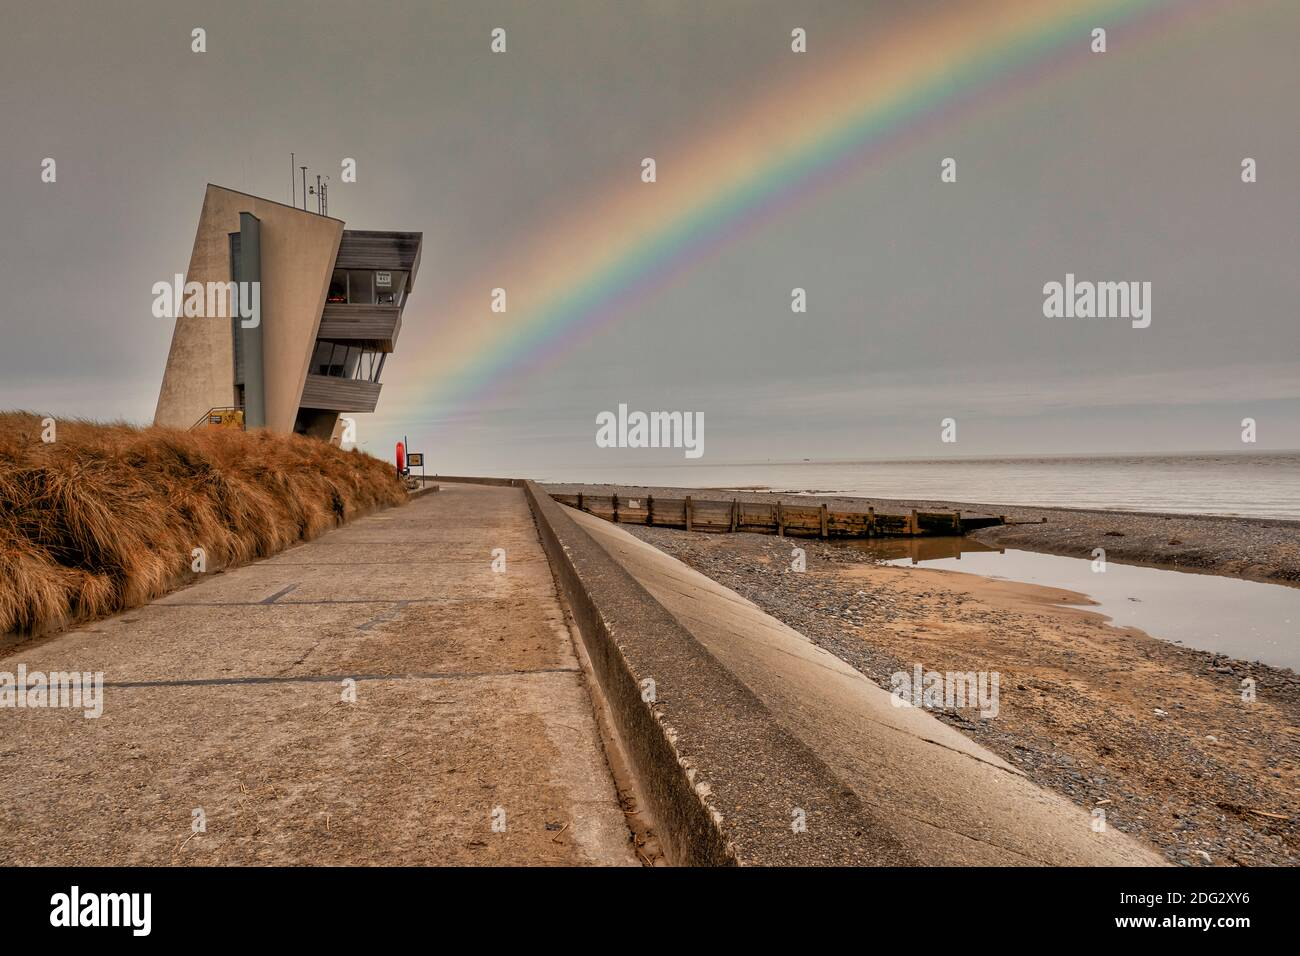 Rainbow at Rossall Beach, Fleetwood, Lancashire, UK. The four storey building on the outer promenade at Rossall Point is Rossall Coastwatch Tower. Stock Photo